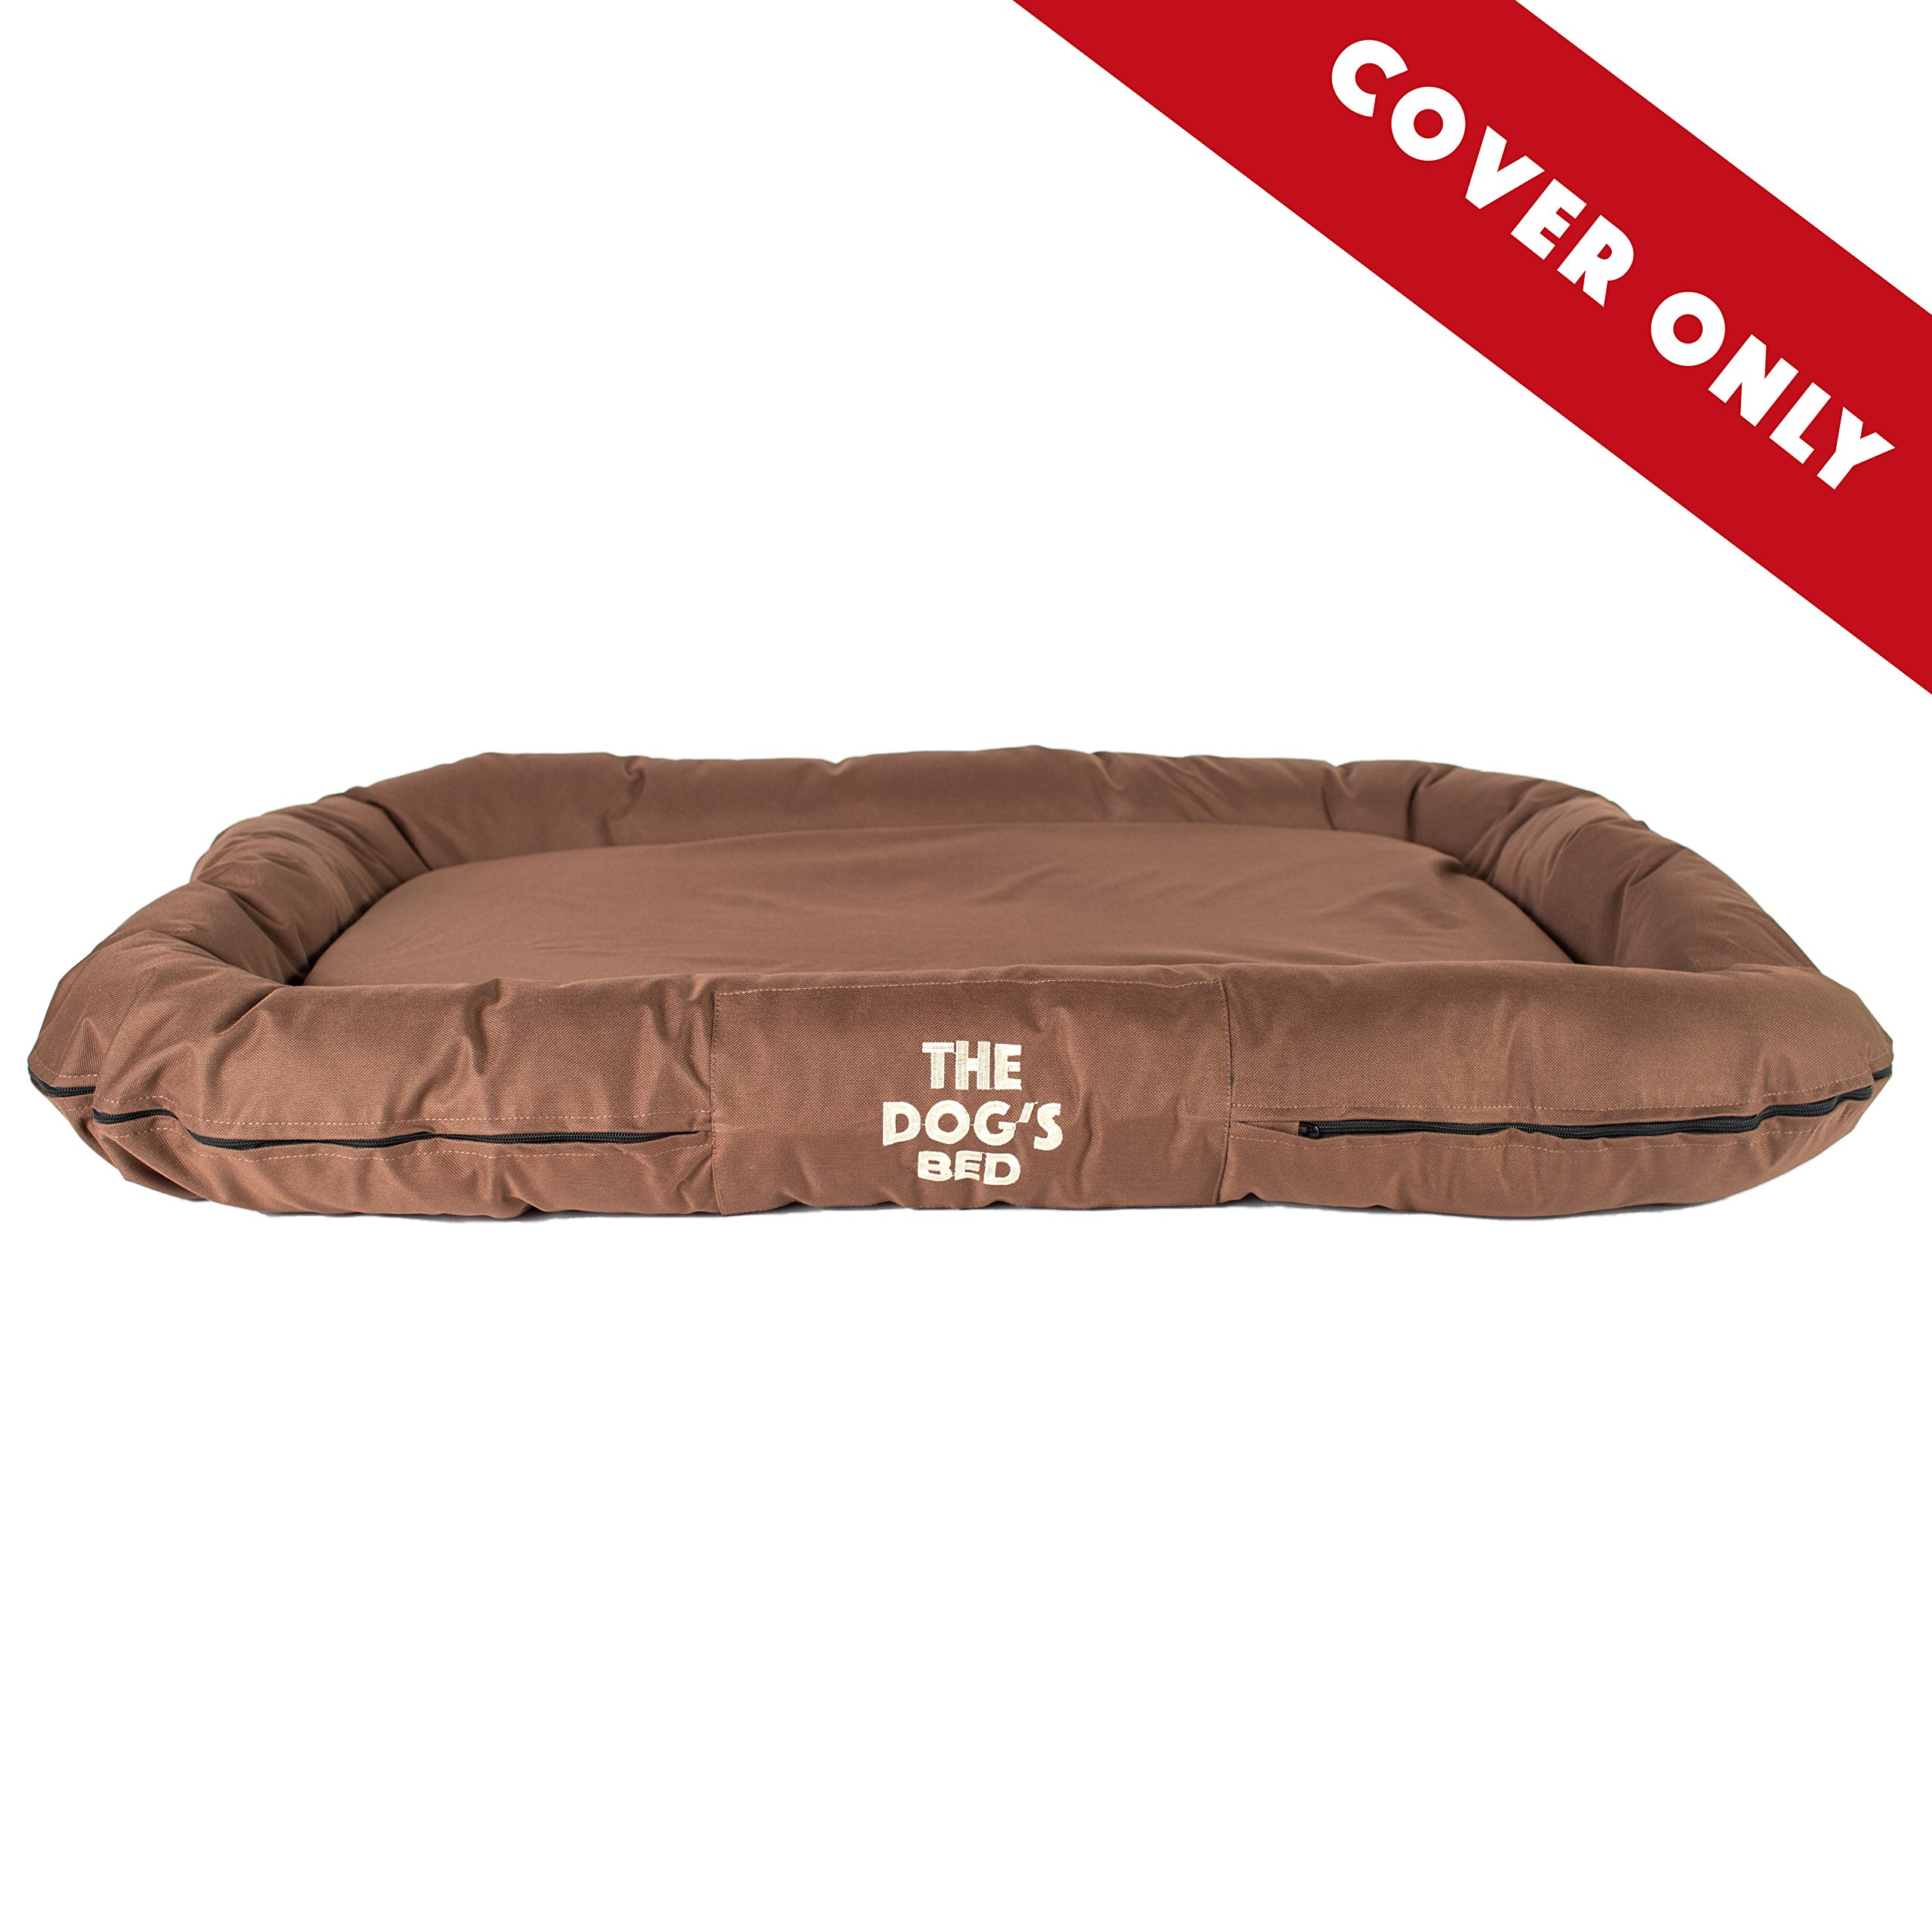 Get Quotations The Dog S Bed Premium Quality Water Resistant Durable Oxford Fabric Designed For